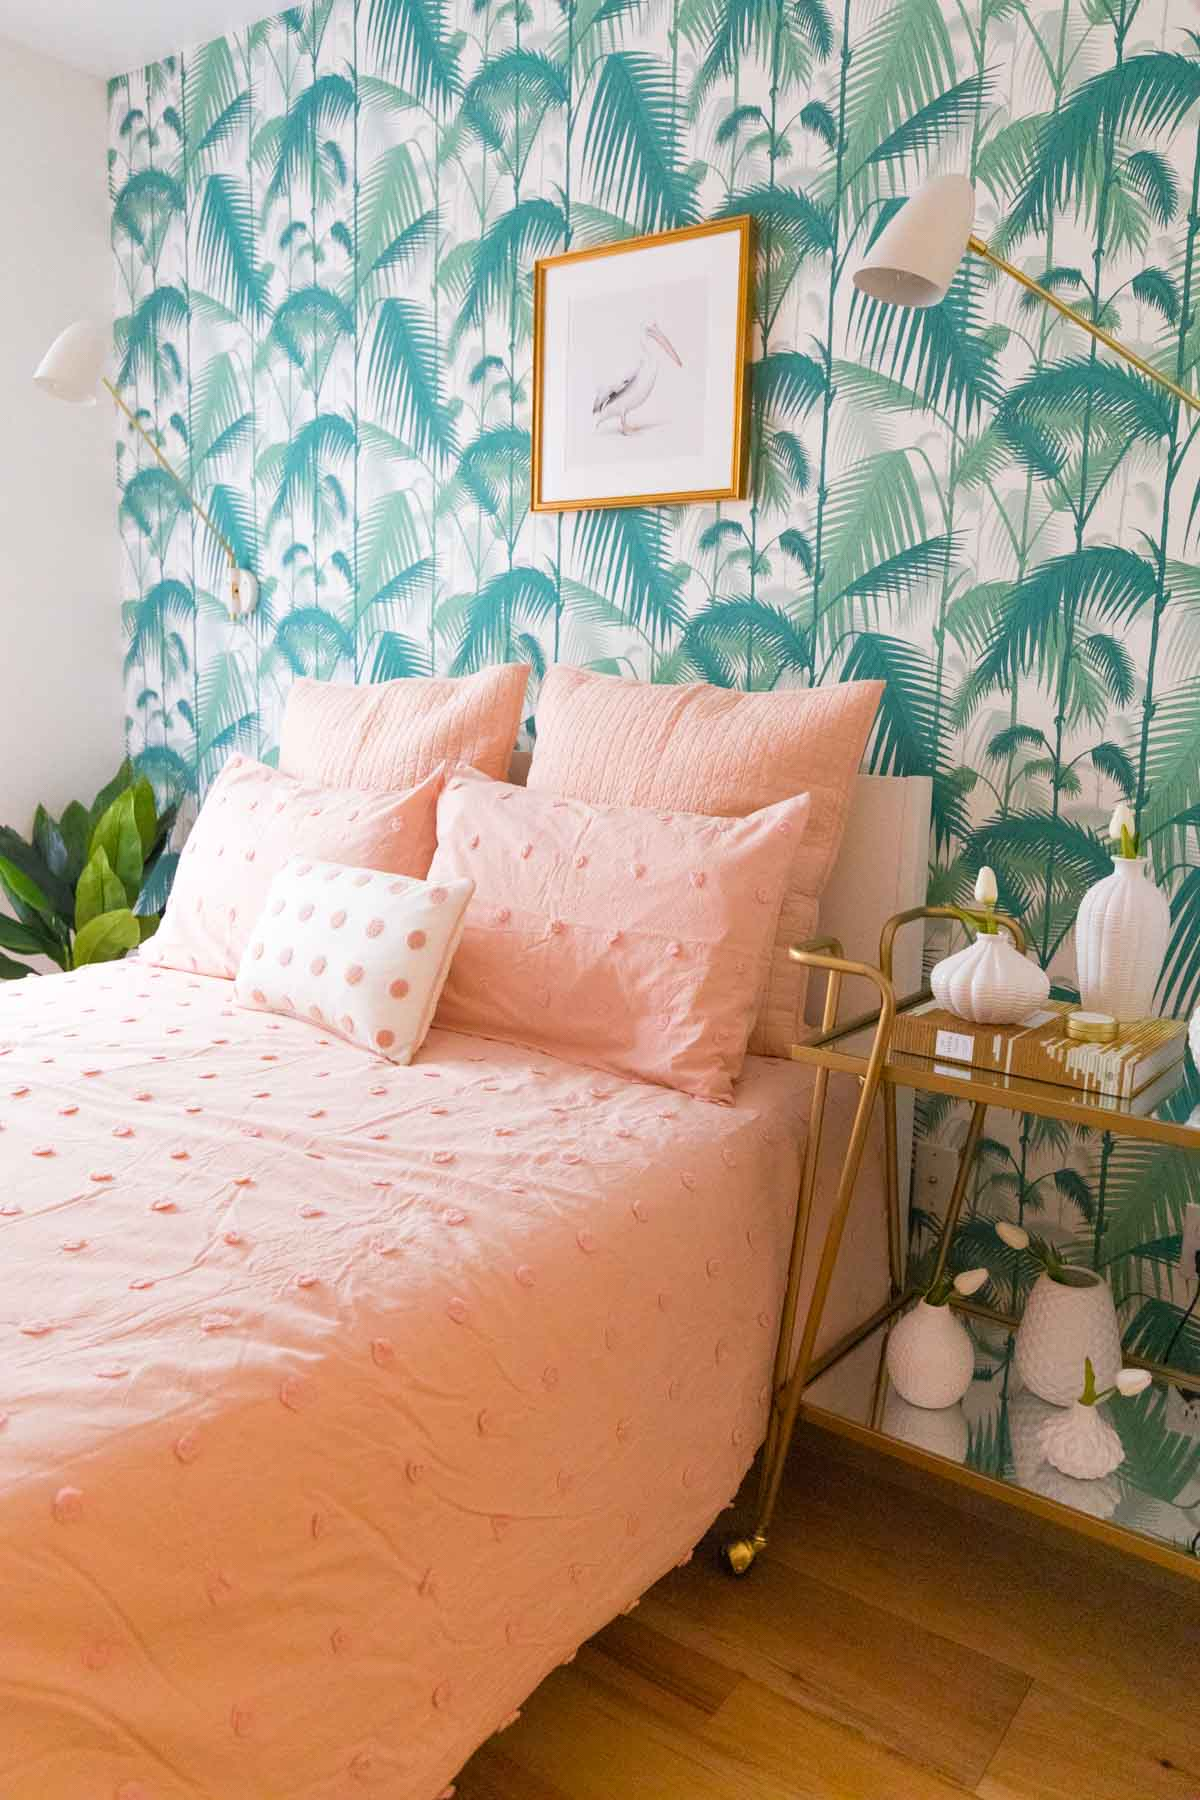 In case you're looking to sell your house fast, I'm sharing a few home staging tips to get you good bang for your buck! by top Houston lifestyle bogger Ashley Rose of sugar & cloth #decor #ideas #design #tips #home